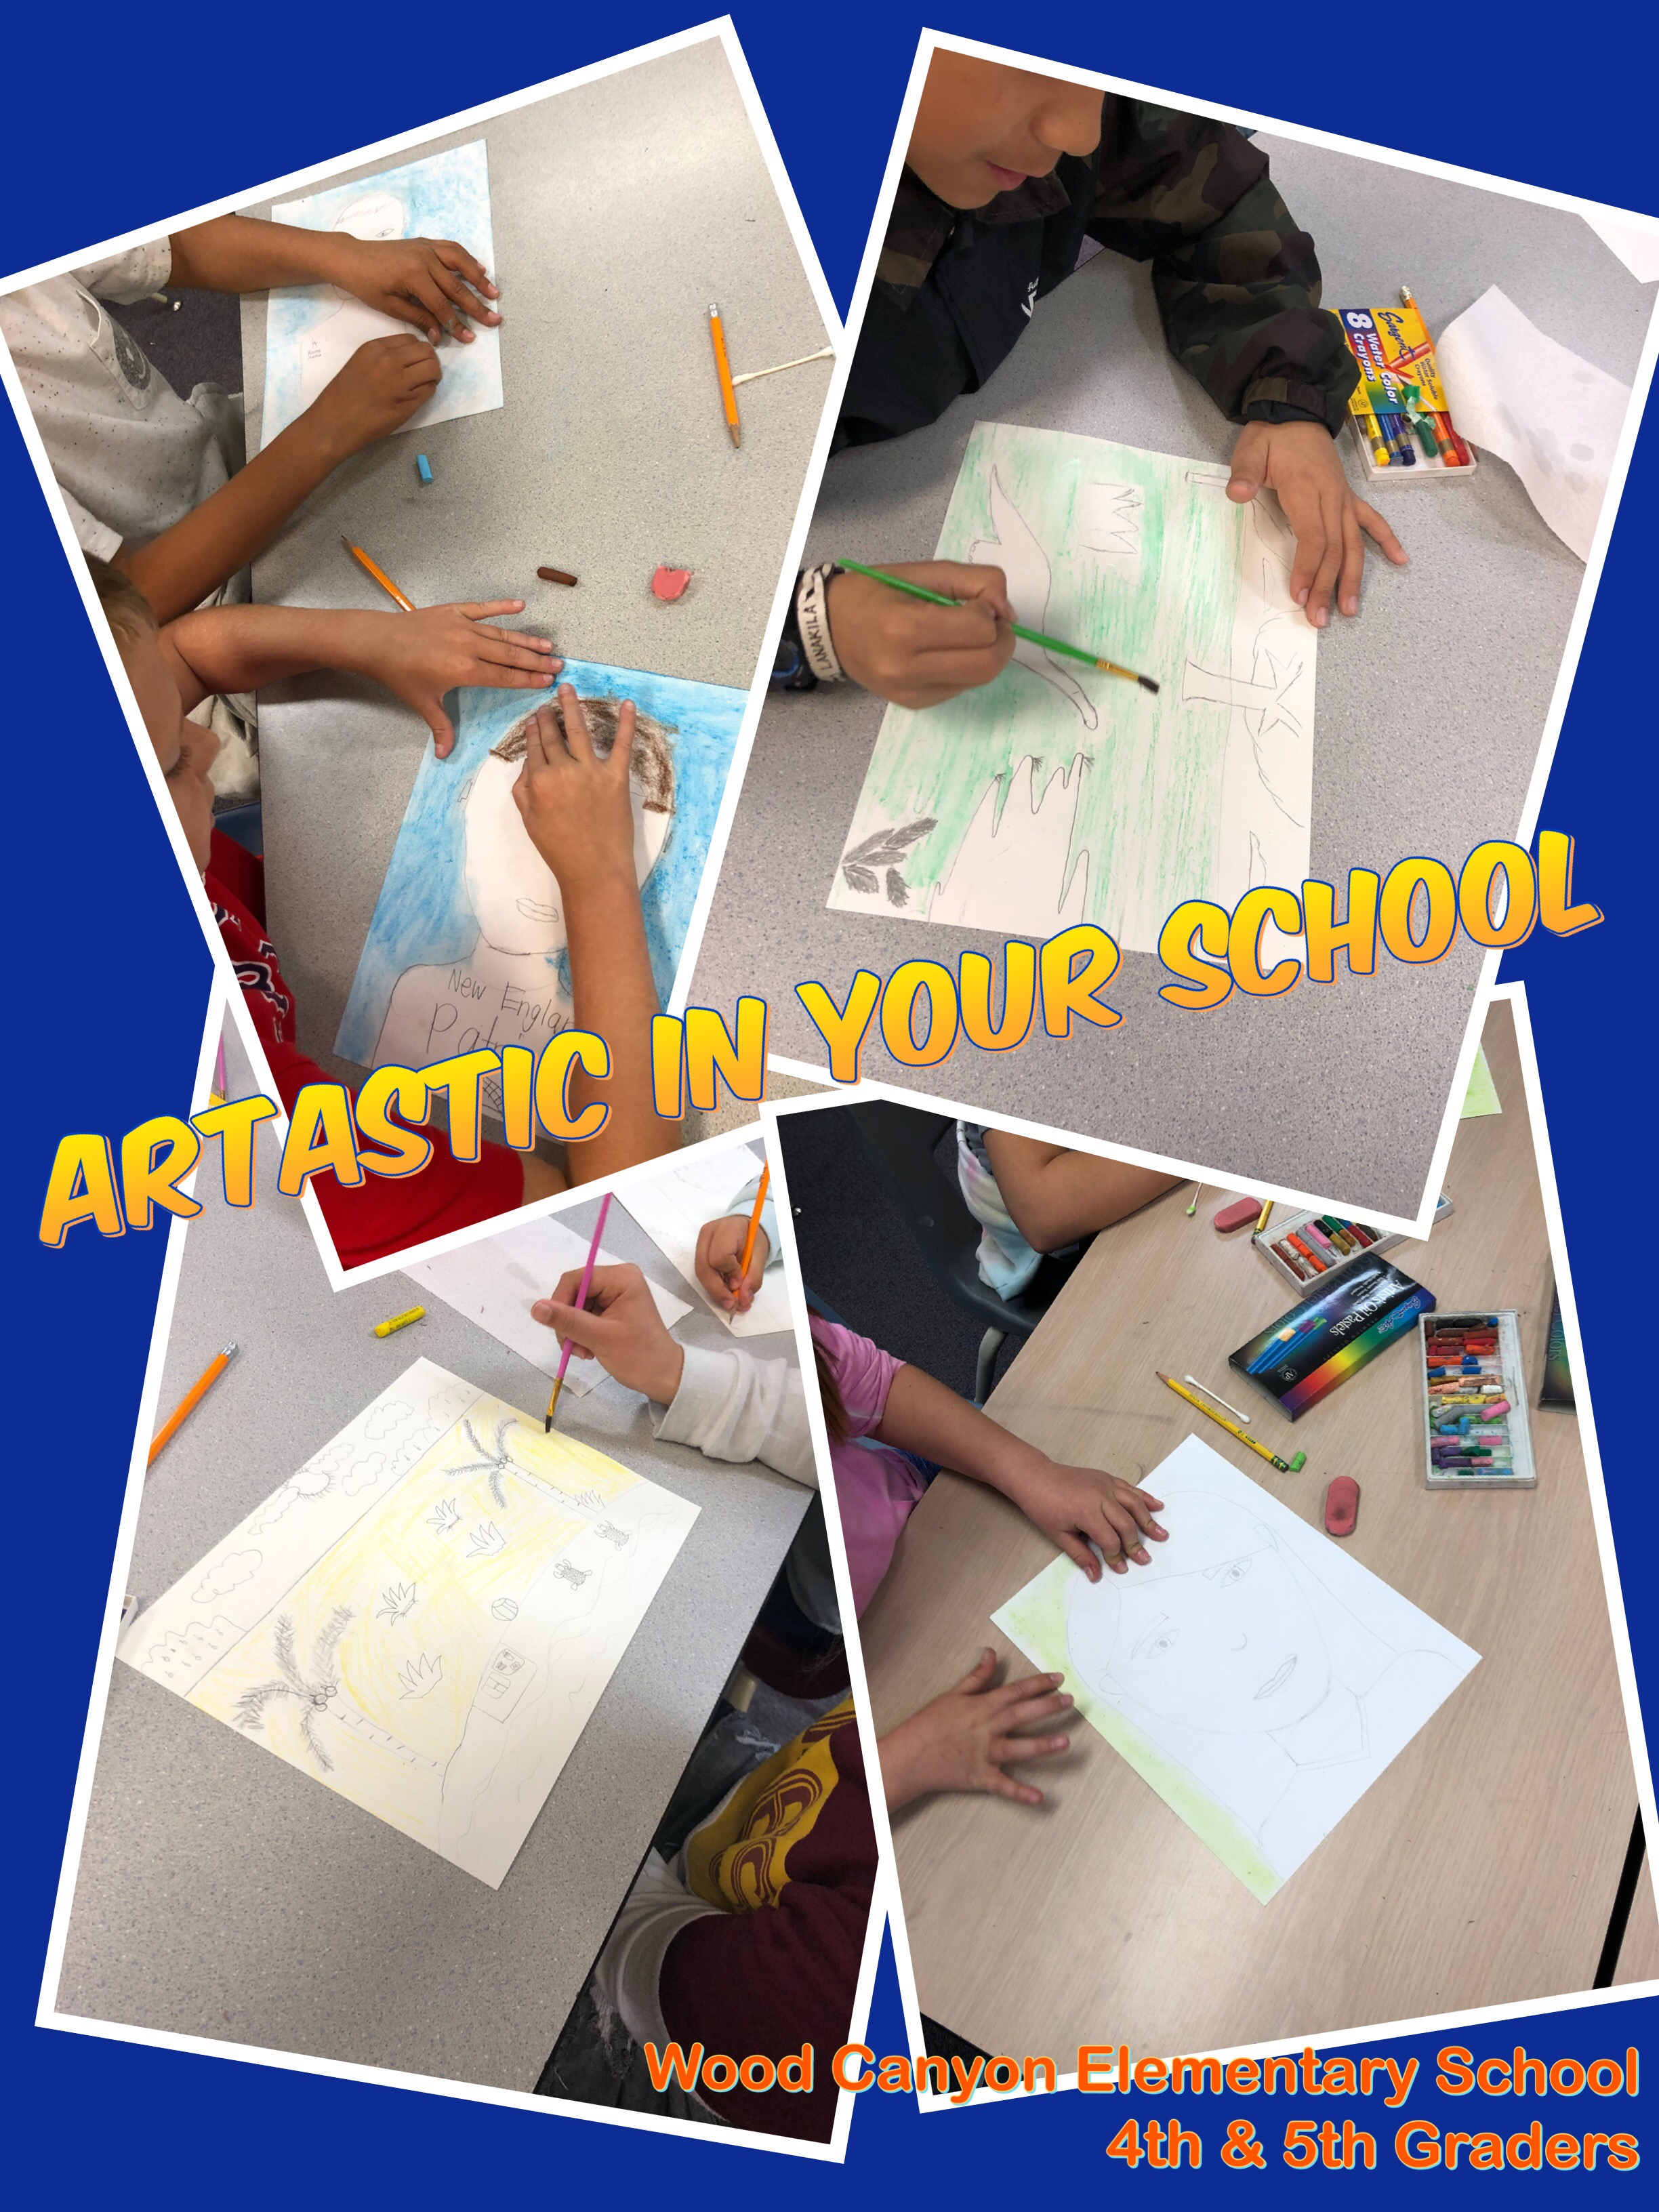 Artastic in your school - Looking to bring back art classes in your school? Artastic Studio OC works closely with PTA to ensure that students are able to express their own individuality, creativeness, and unique character through their artwork while learning the basic art fundamentals, techniques, and most of all they have fun doing it.Contact us for more details!